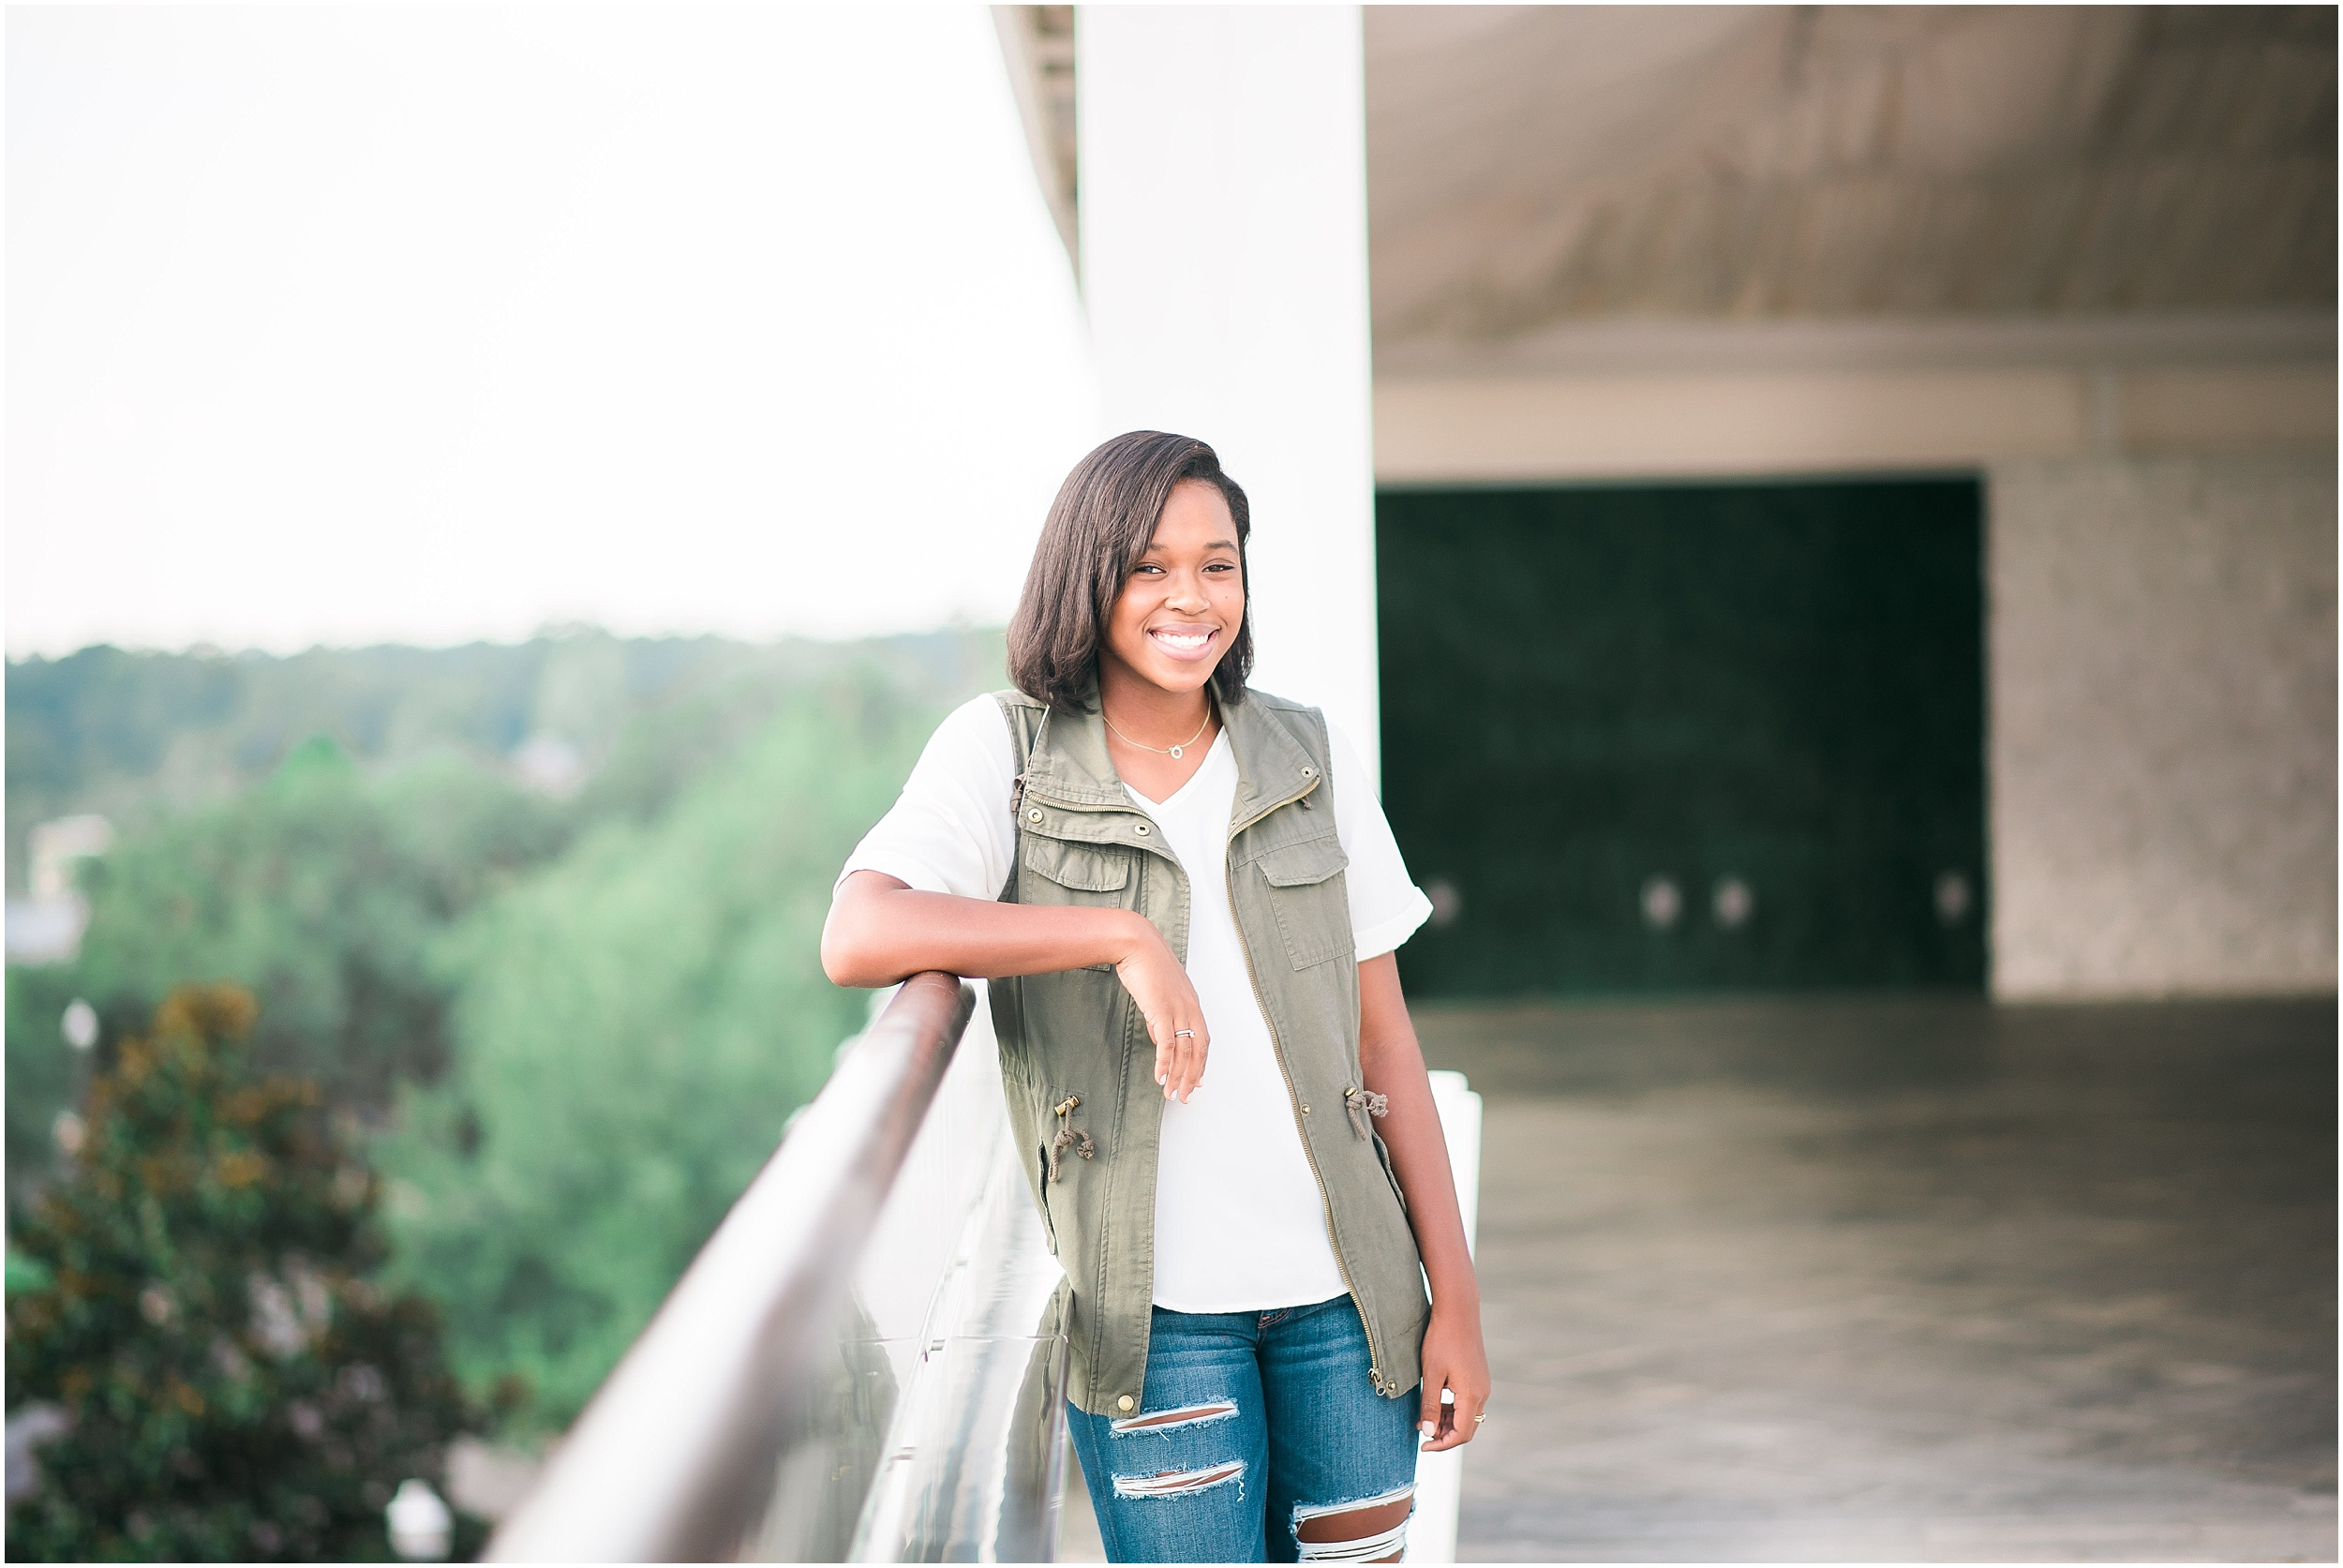 Tallahassee Florida Senior Photographer, Tenejah Senior Session at Maclay Gardens, Tallahassee Florida_0001.jpg